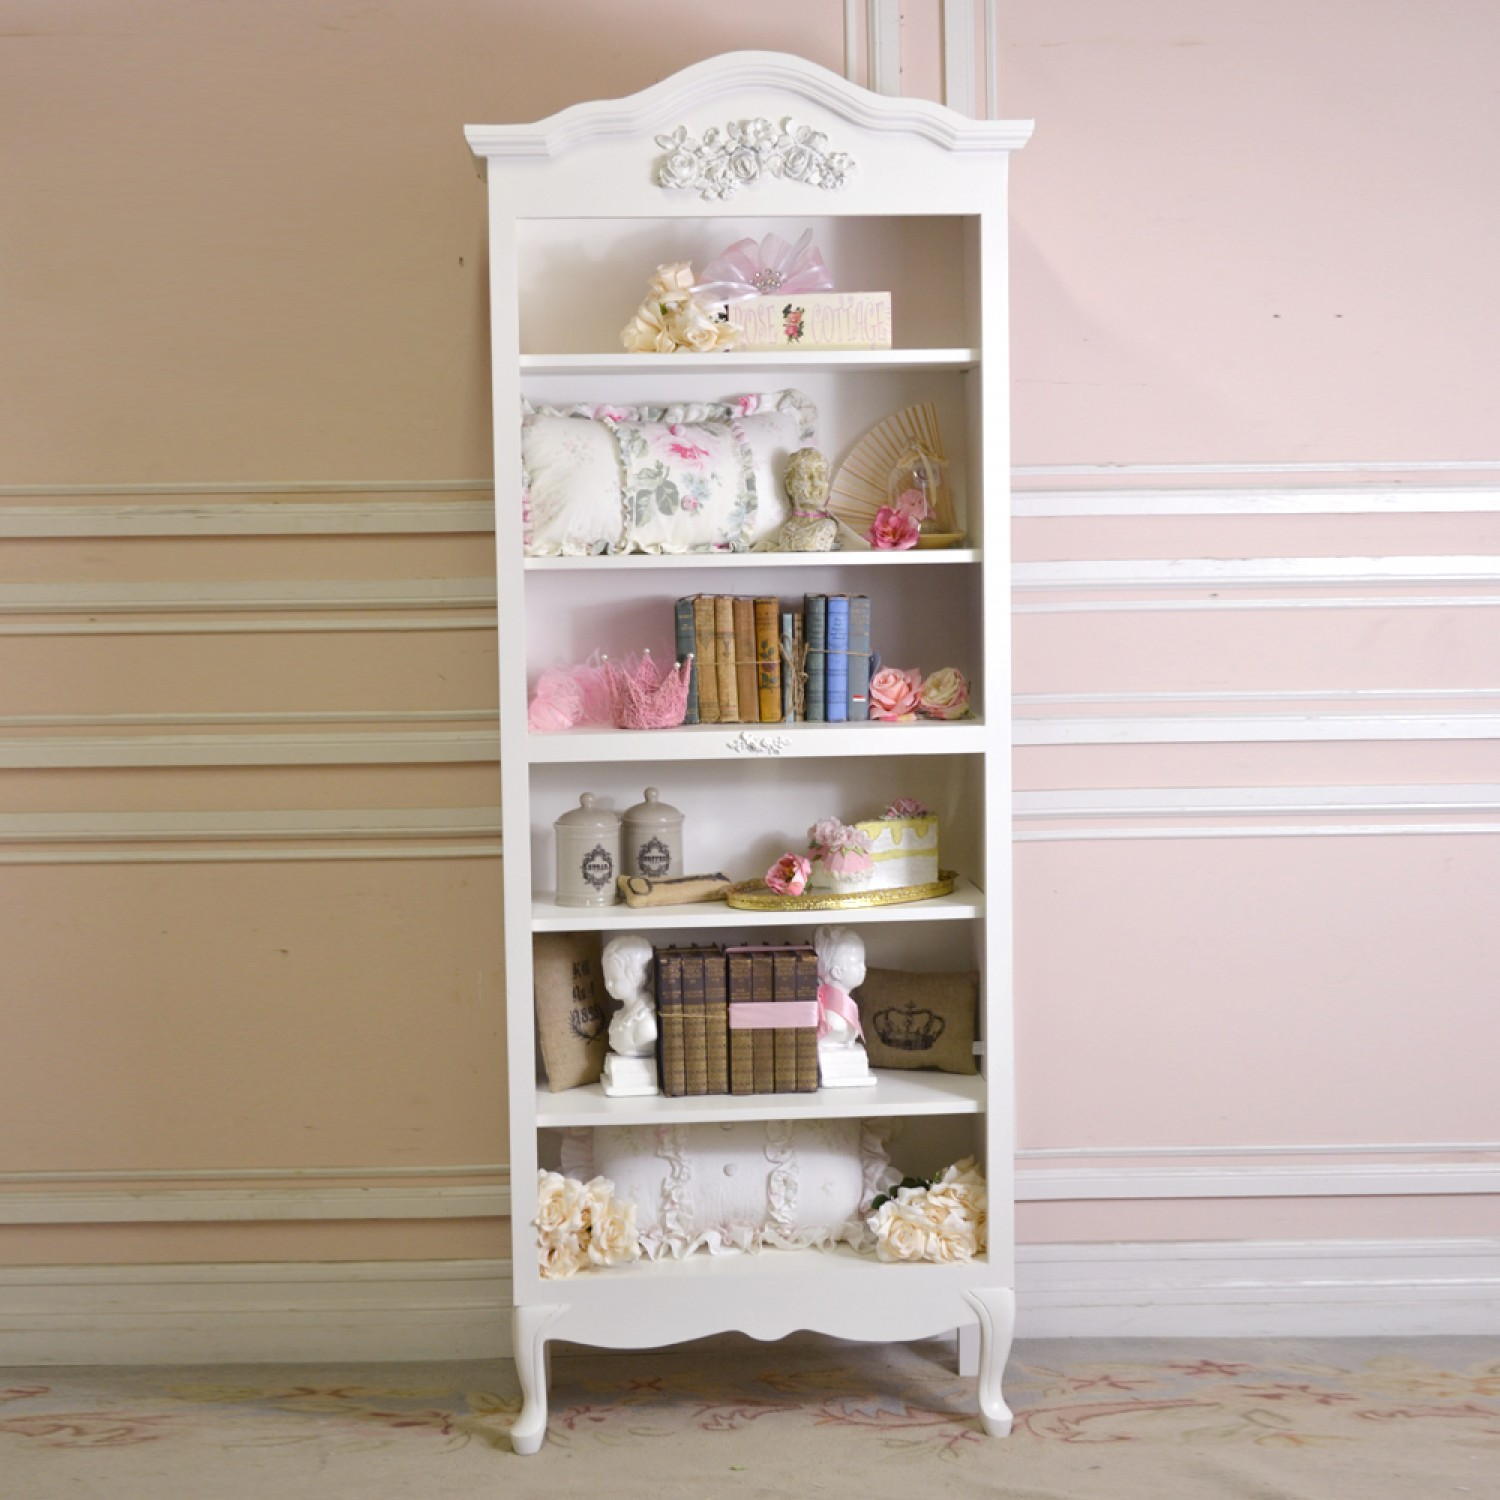 Shabby Chic Bookshelf: How to Share Vintage Appeal | HomesFeed